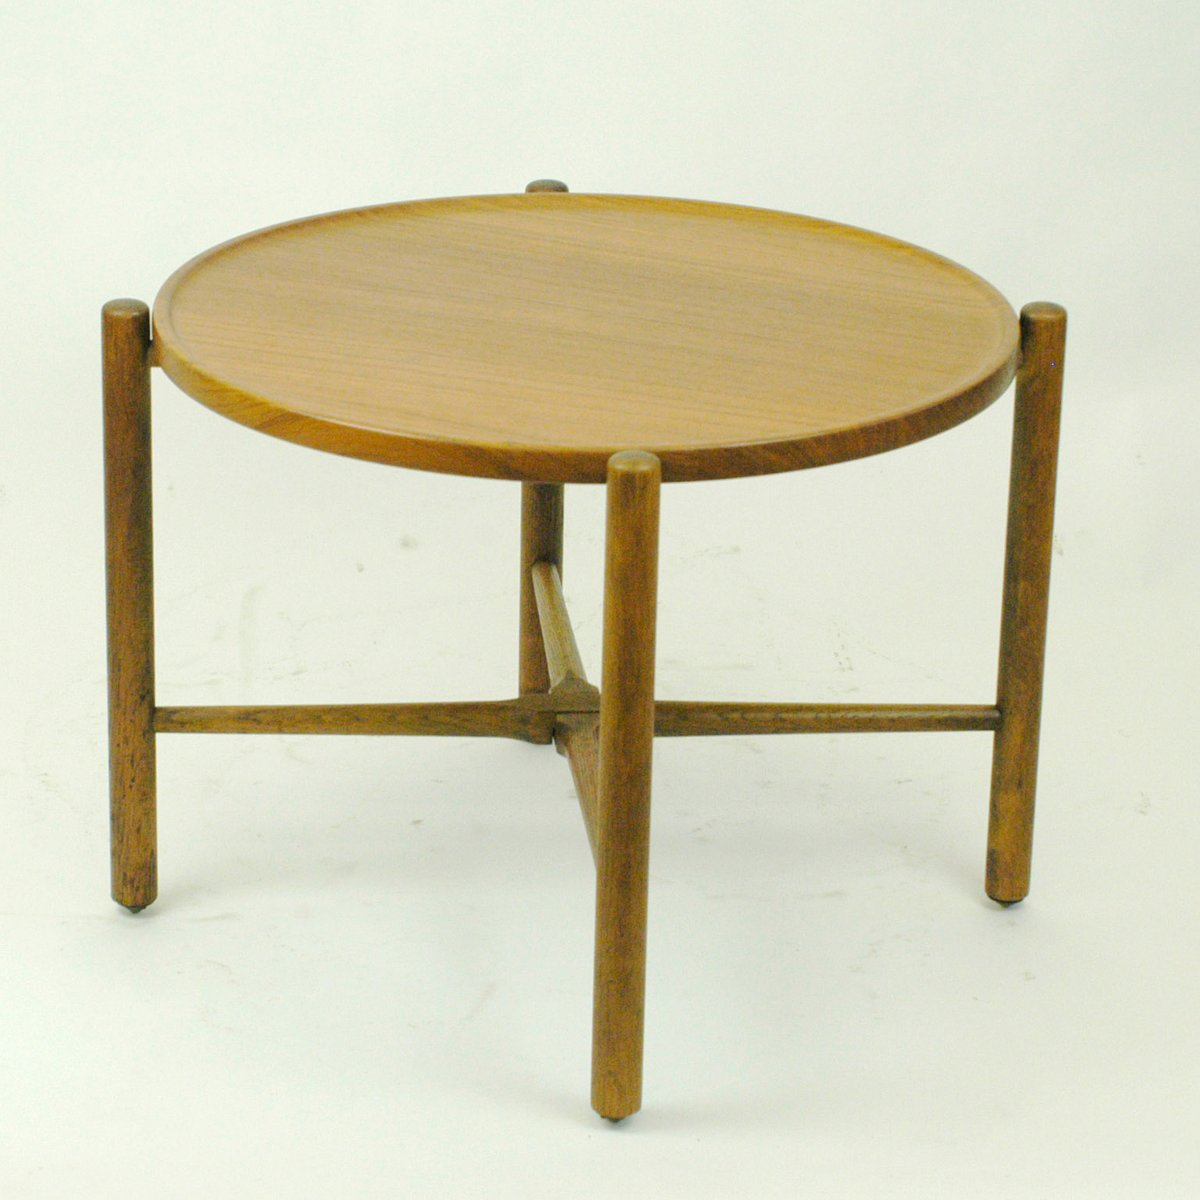 Vintage Danish Teak Coffee Table By Hans Wegner For Andreas Tuck For Sale At Pamono